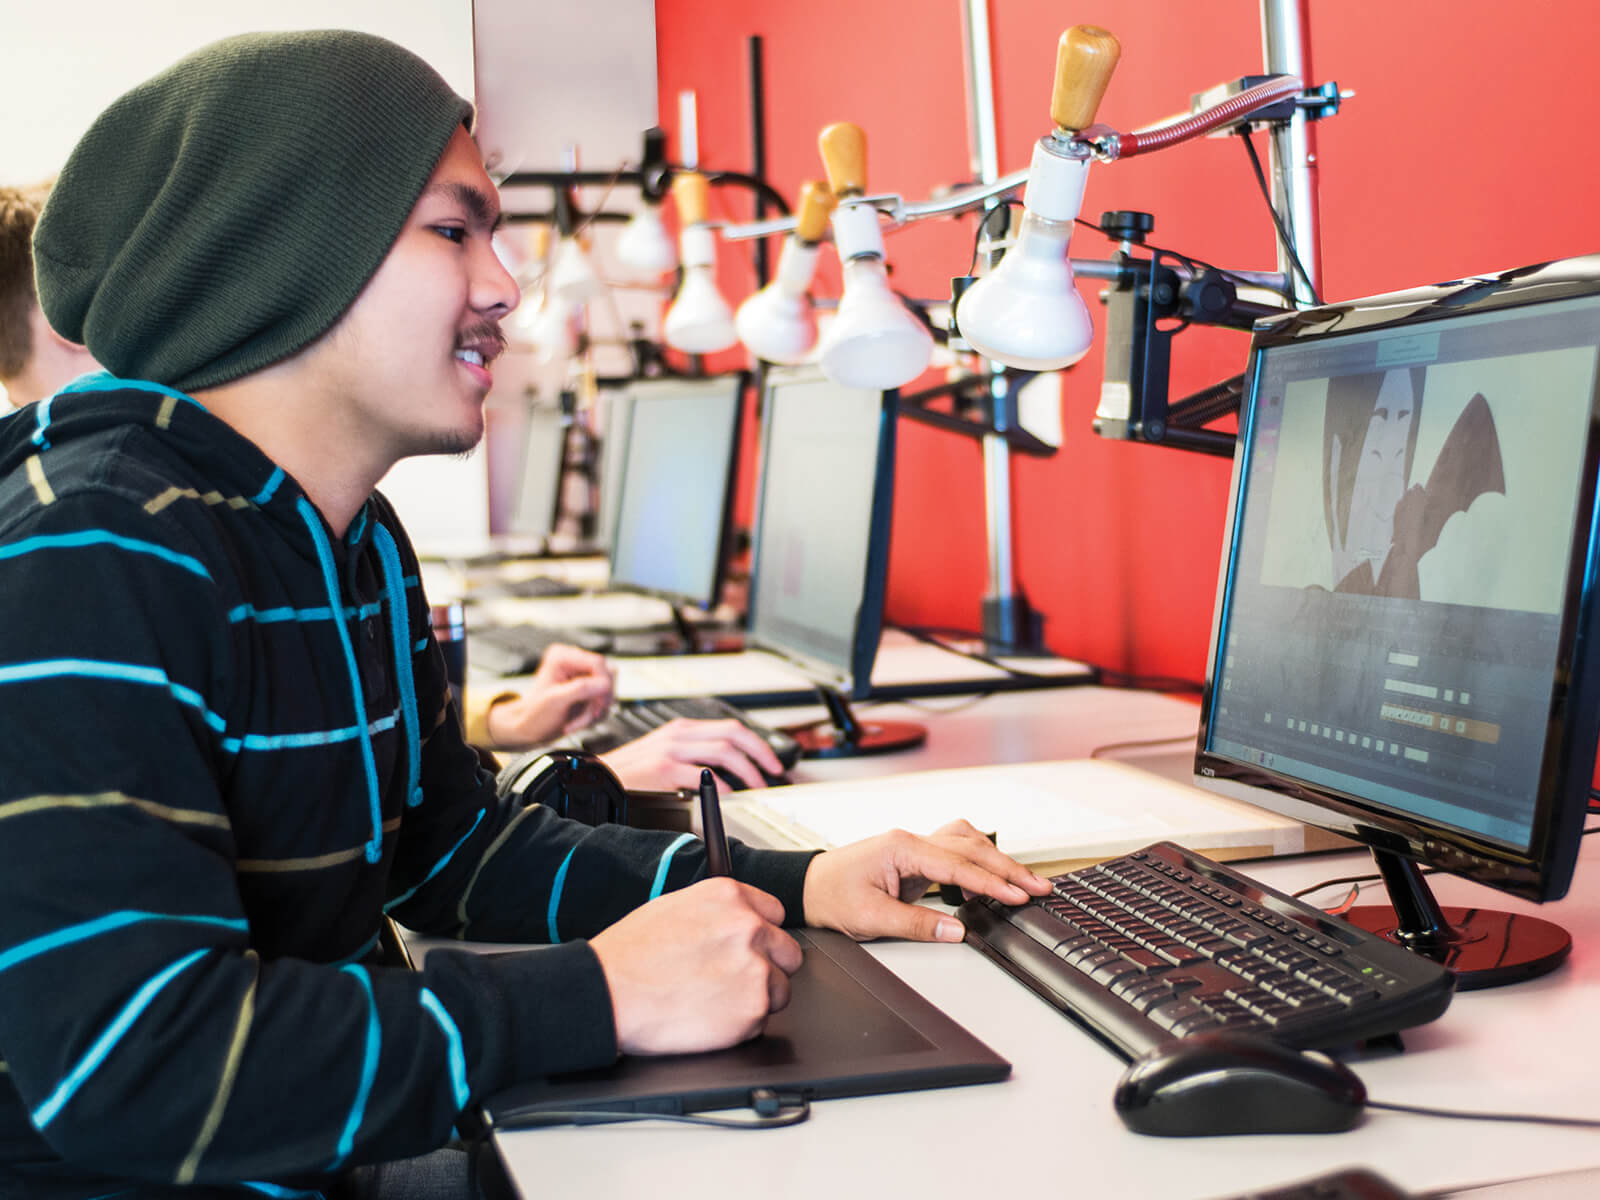 A DigiPen student works with a drawing tablet in front of a computer screen